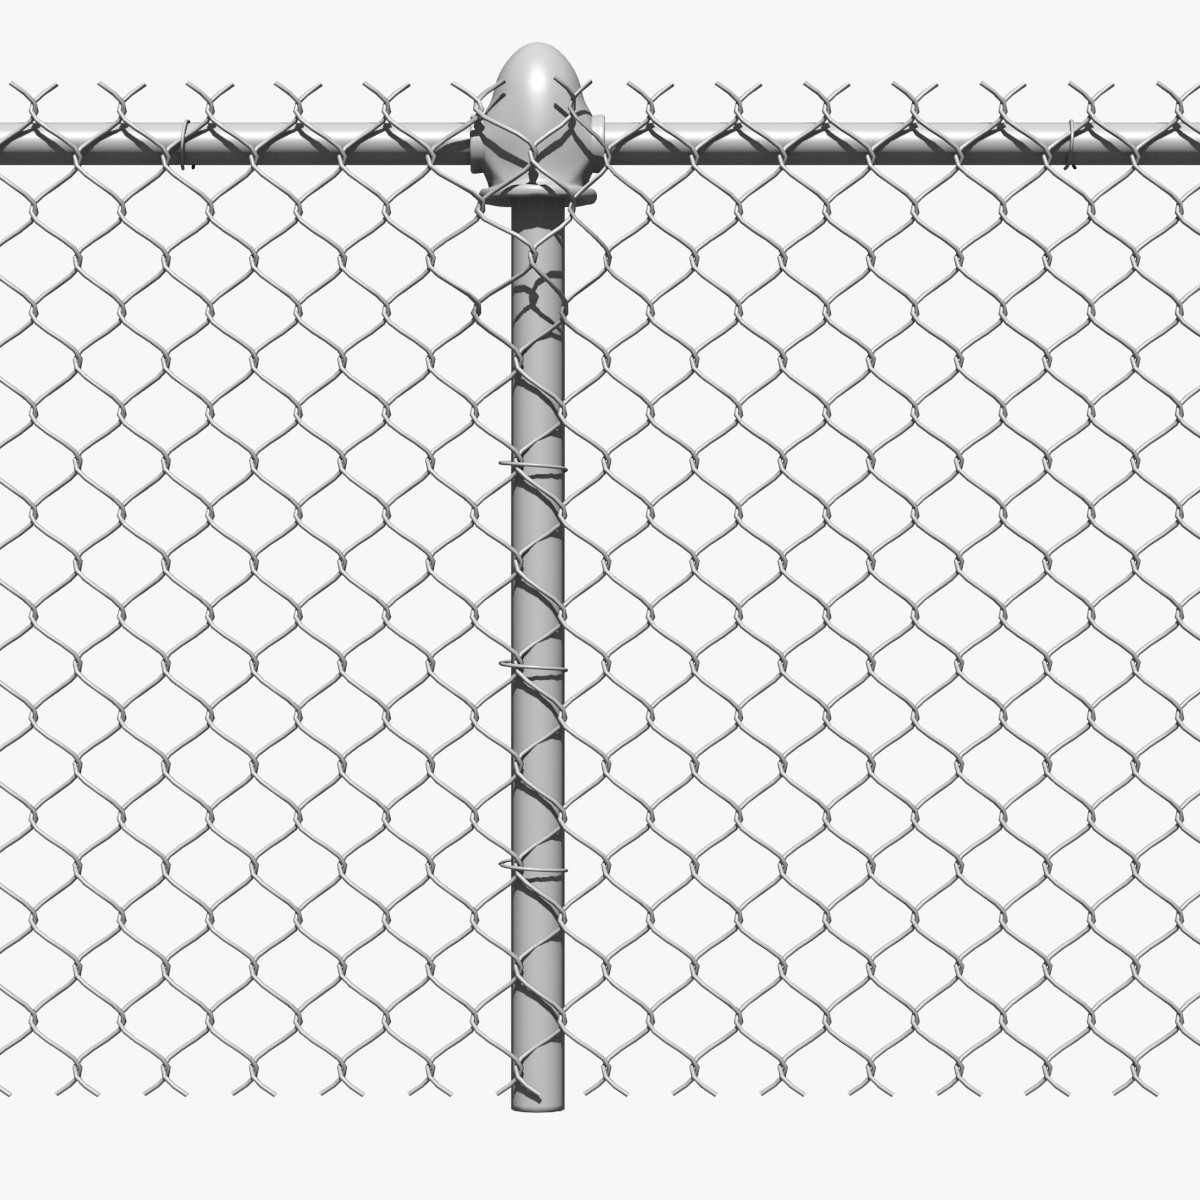 Chain Link Fence Fence Png - Fence PNG